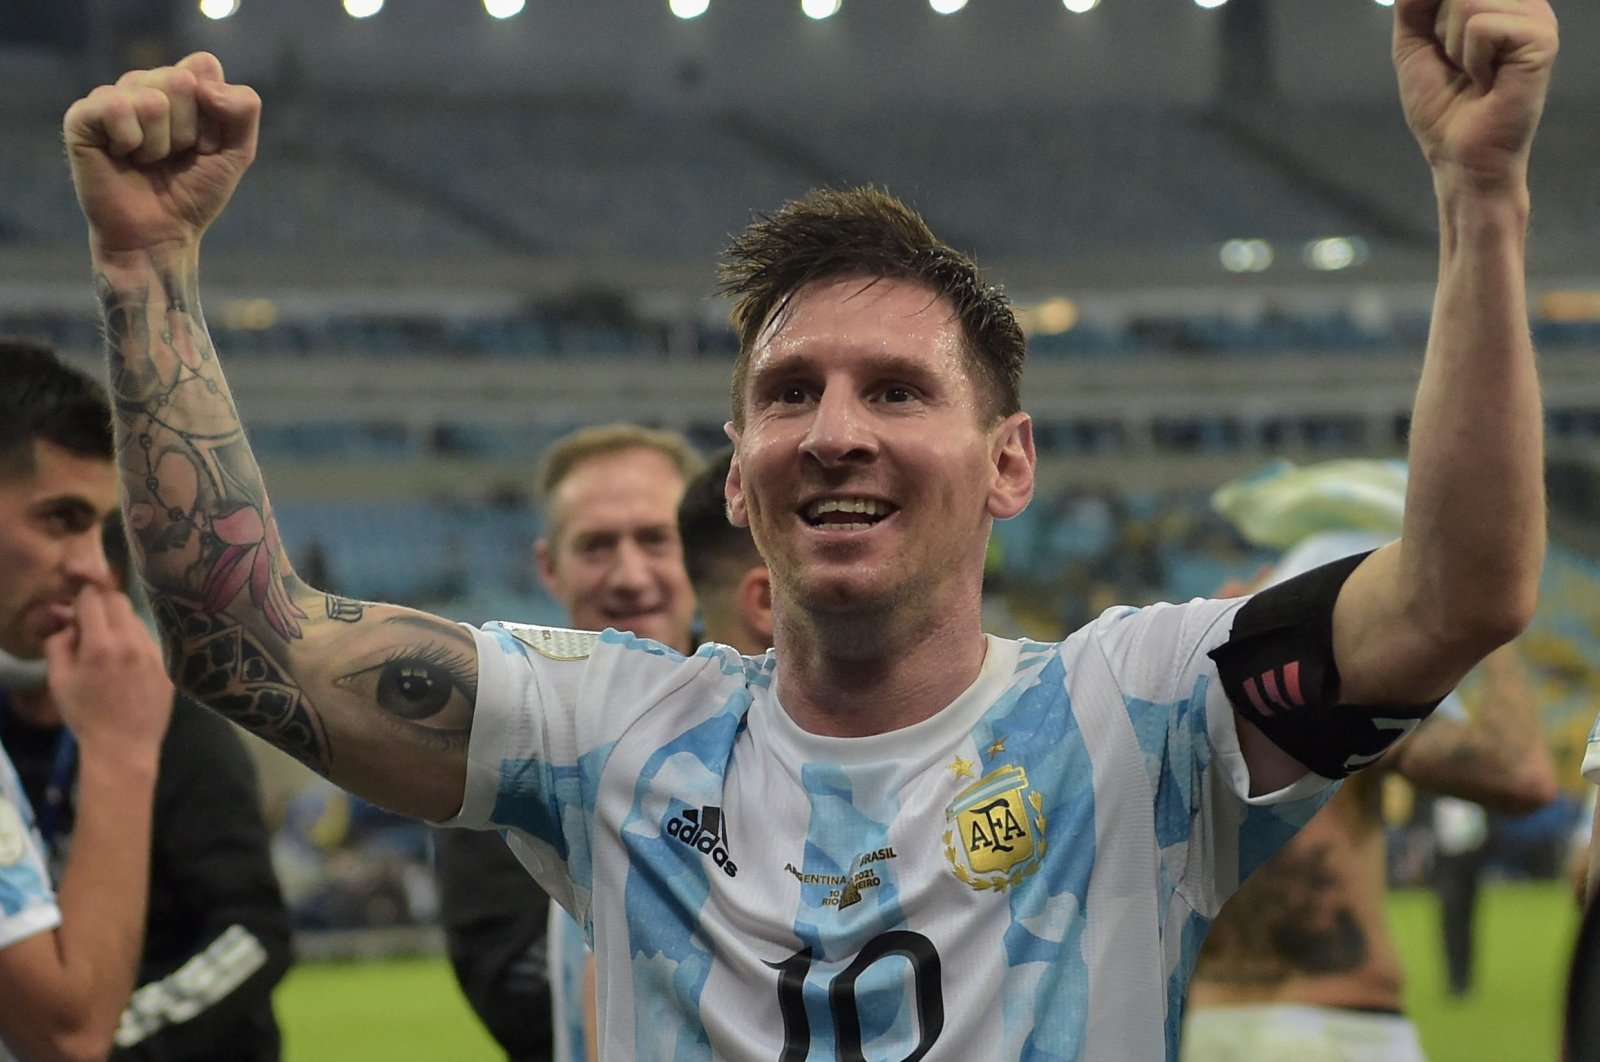 Argentina's Lionel Messi celebrates after winning the 2021 Copa America final against Brazil at Maracana Stadium in Rio de Janeiro, Brazil, July 10, 2021. (AFP Photo)